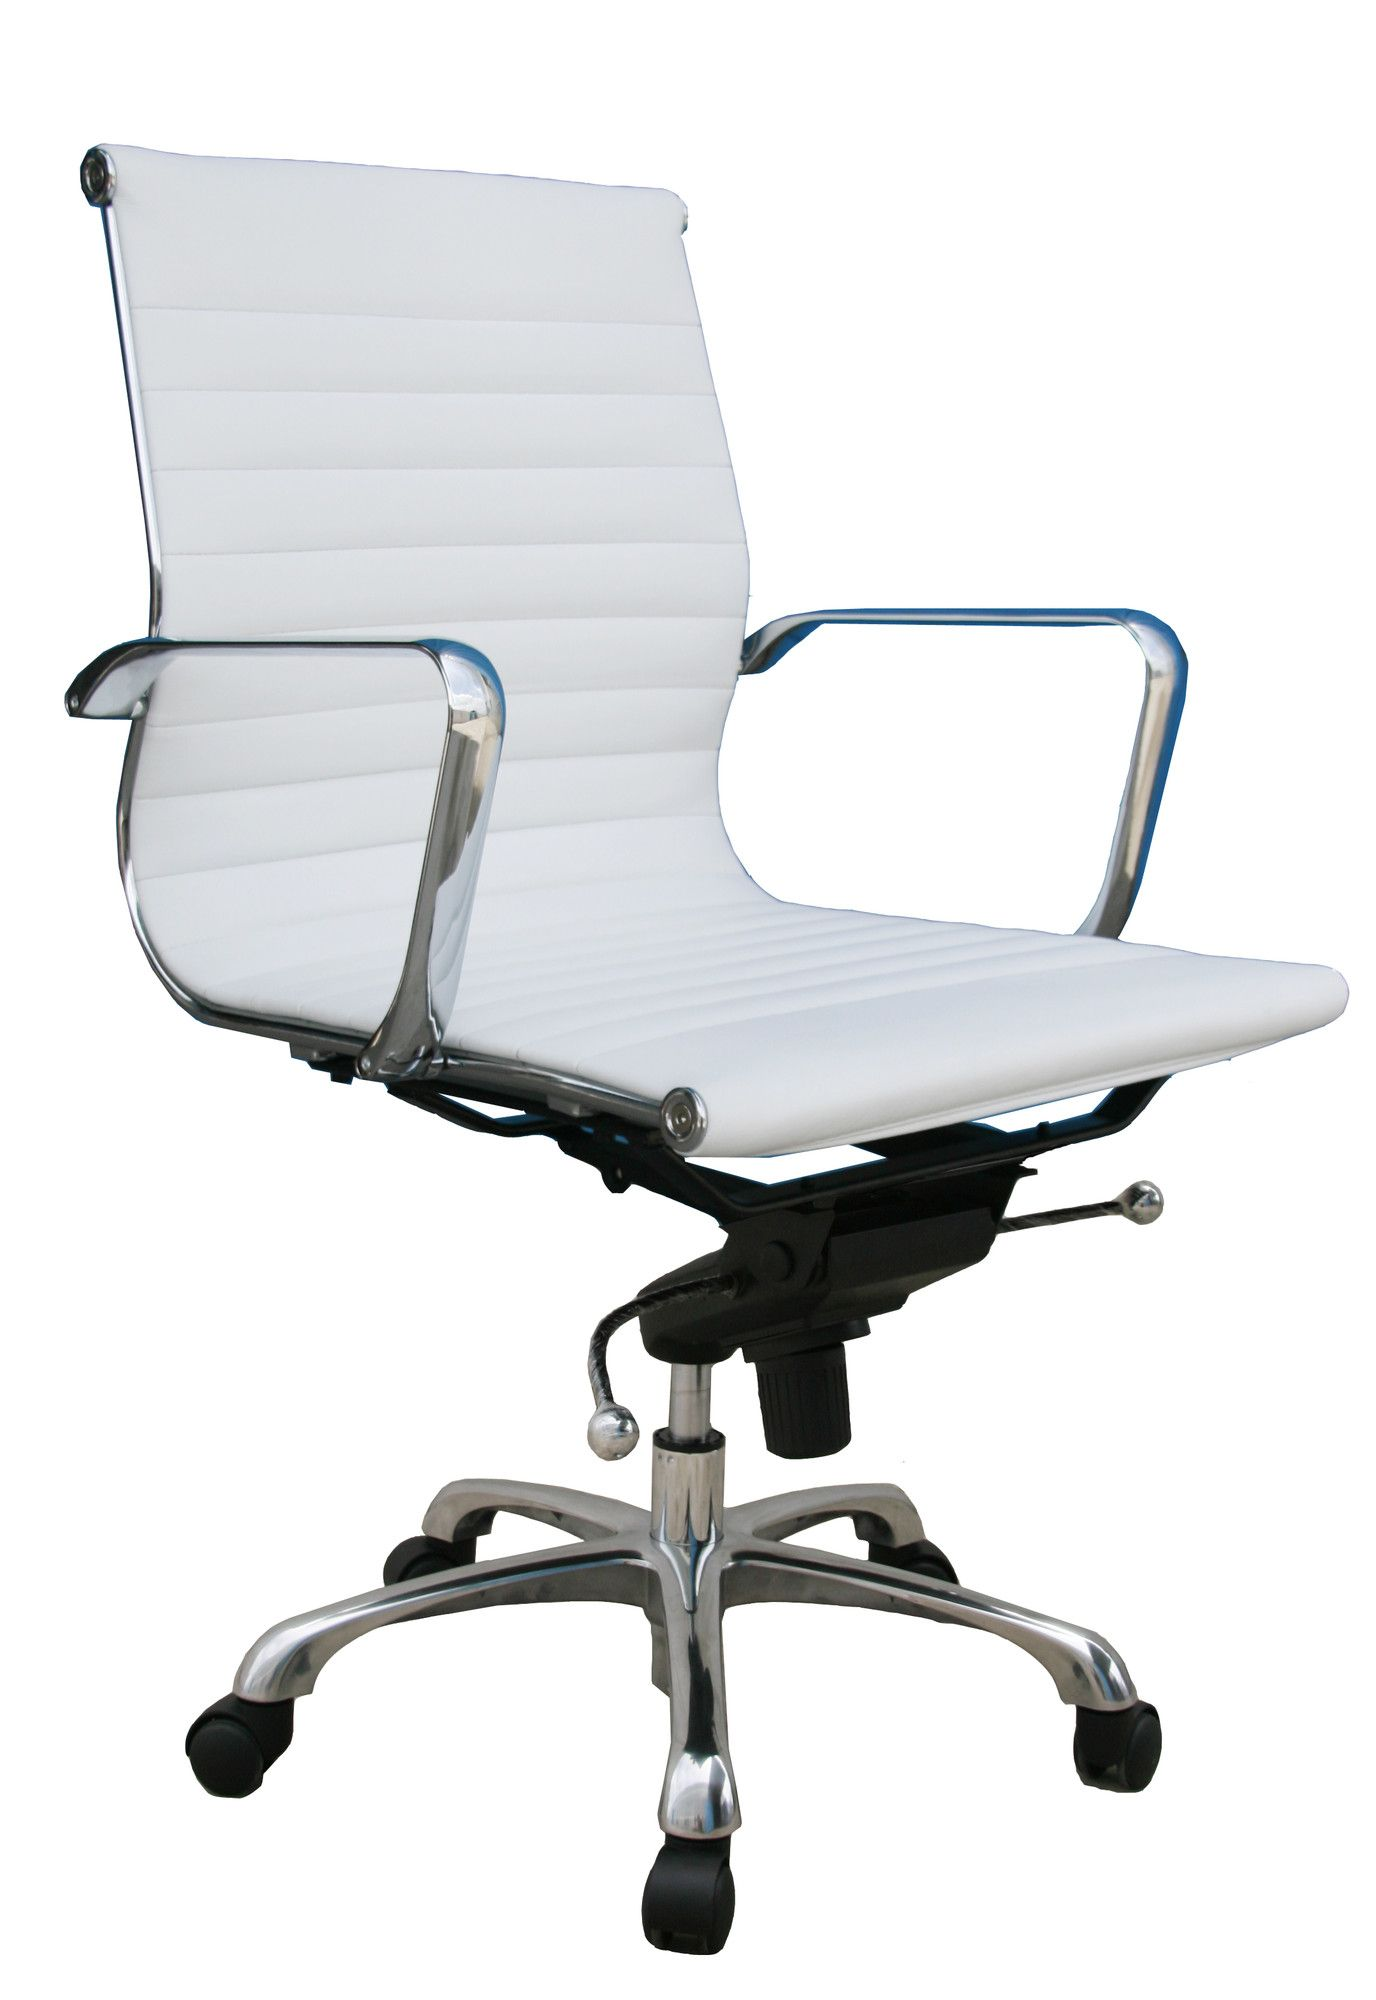 Comfy Desk Chair White office chair, Cheap office chairs